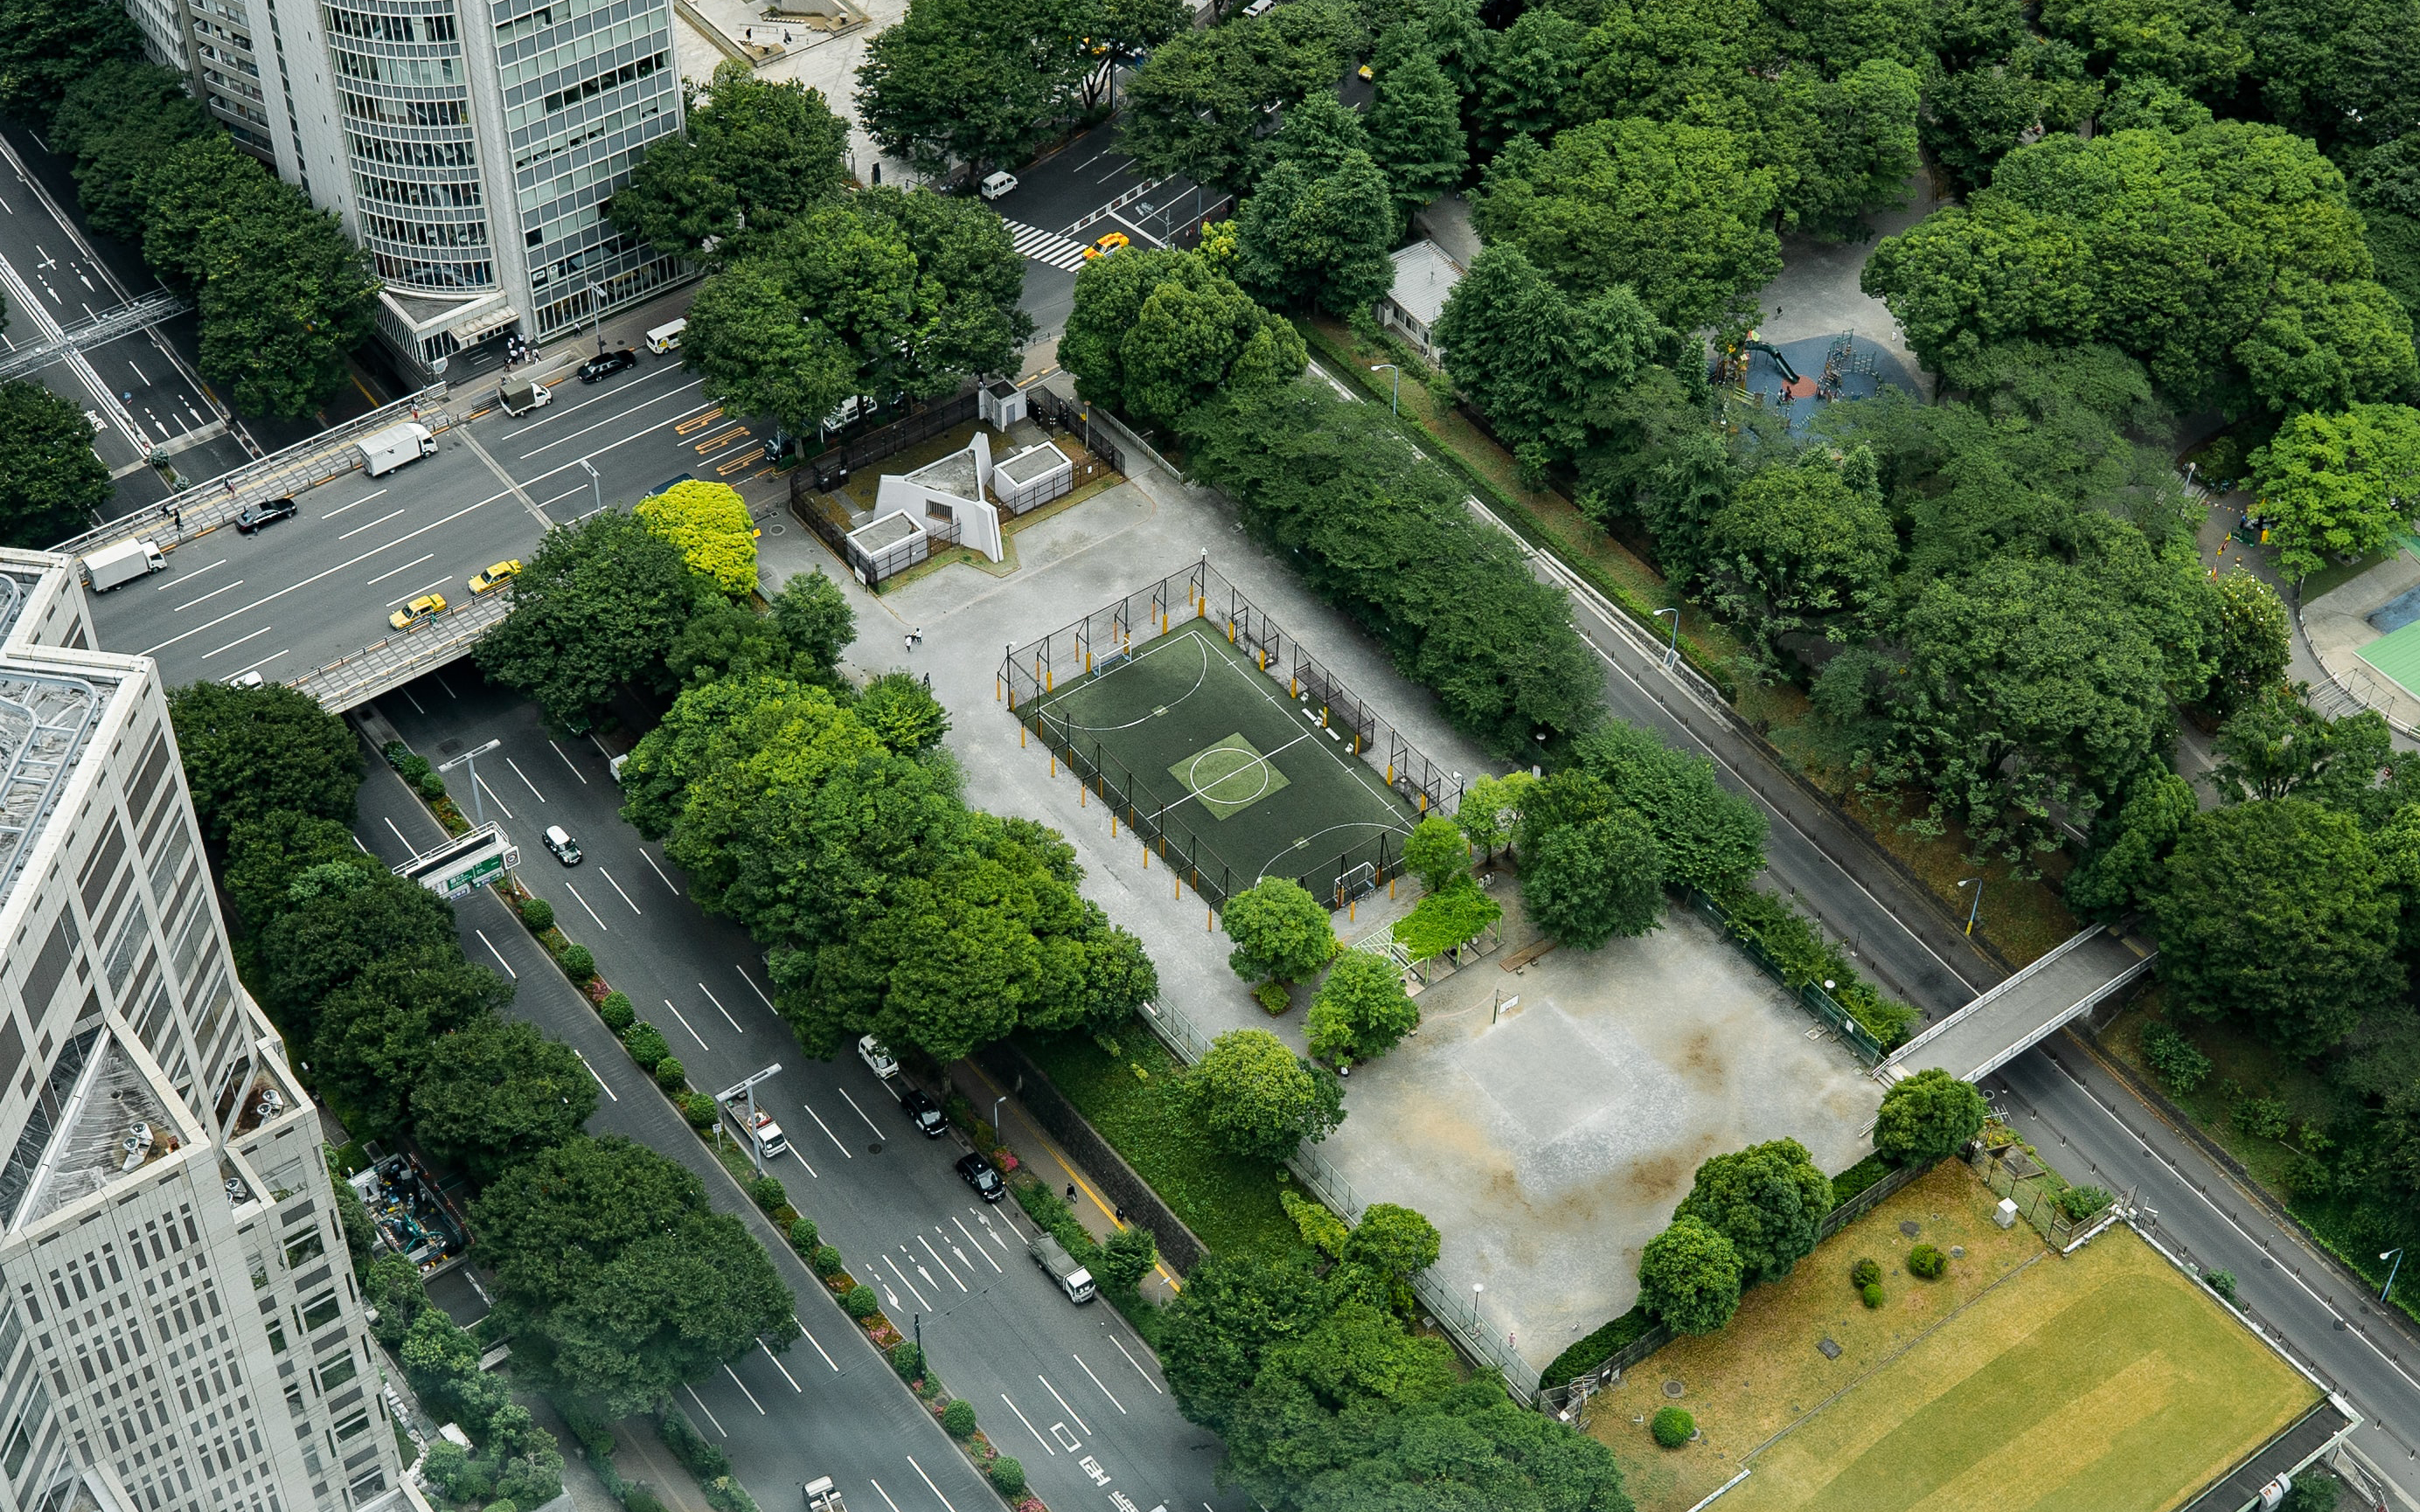 Aerial shot of city with trees